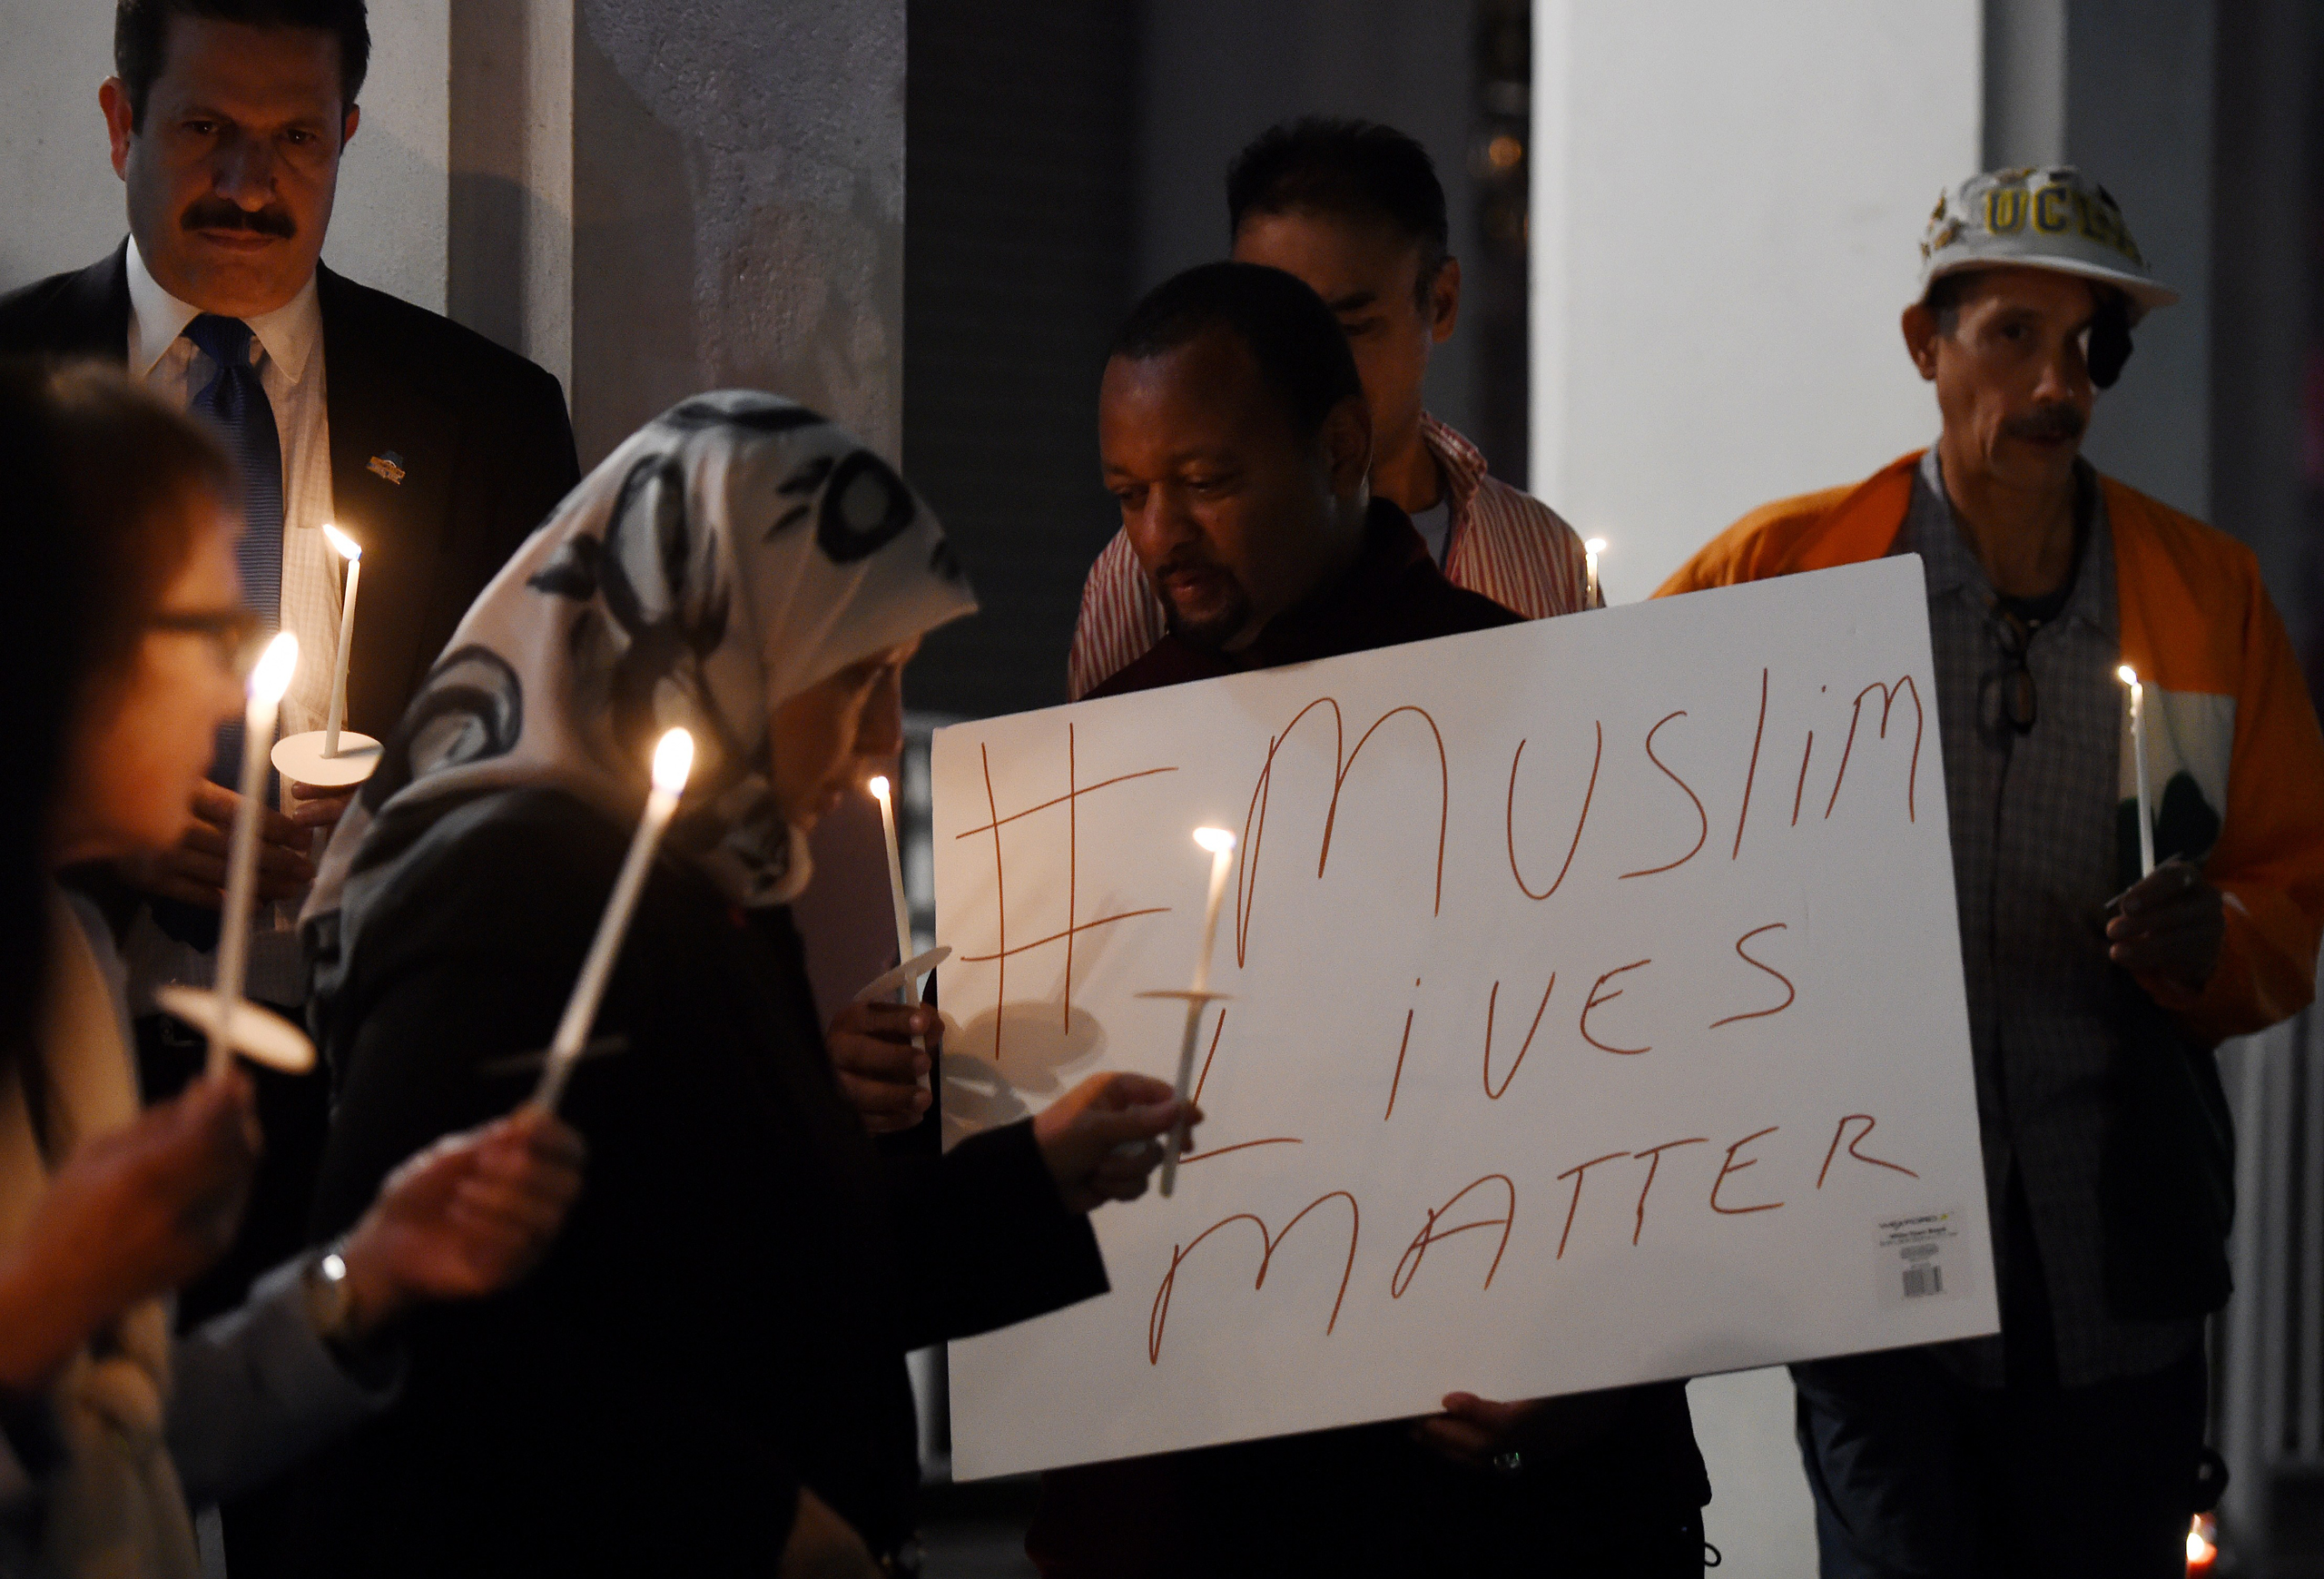 Muslims hold a candlelight vigil  at the Islamic Center of Southern California in Los Angeles on Feb. 12, 2015.